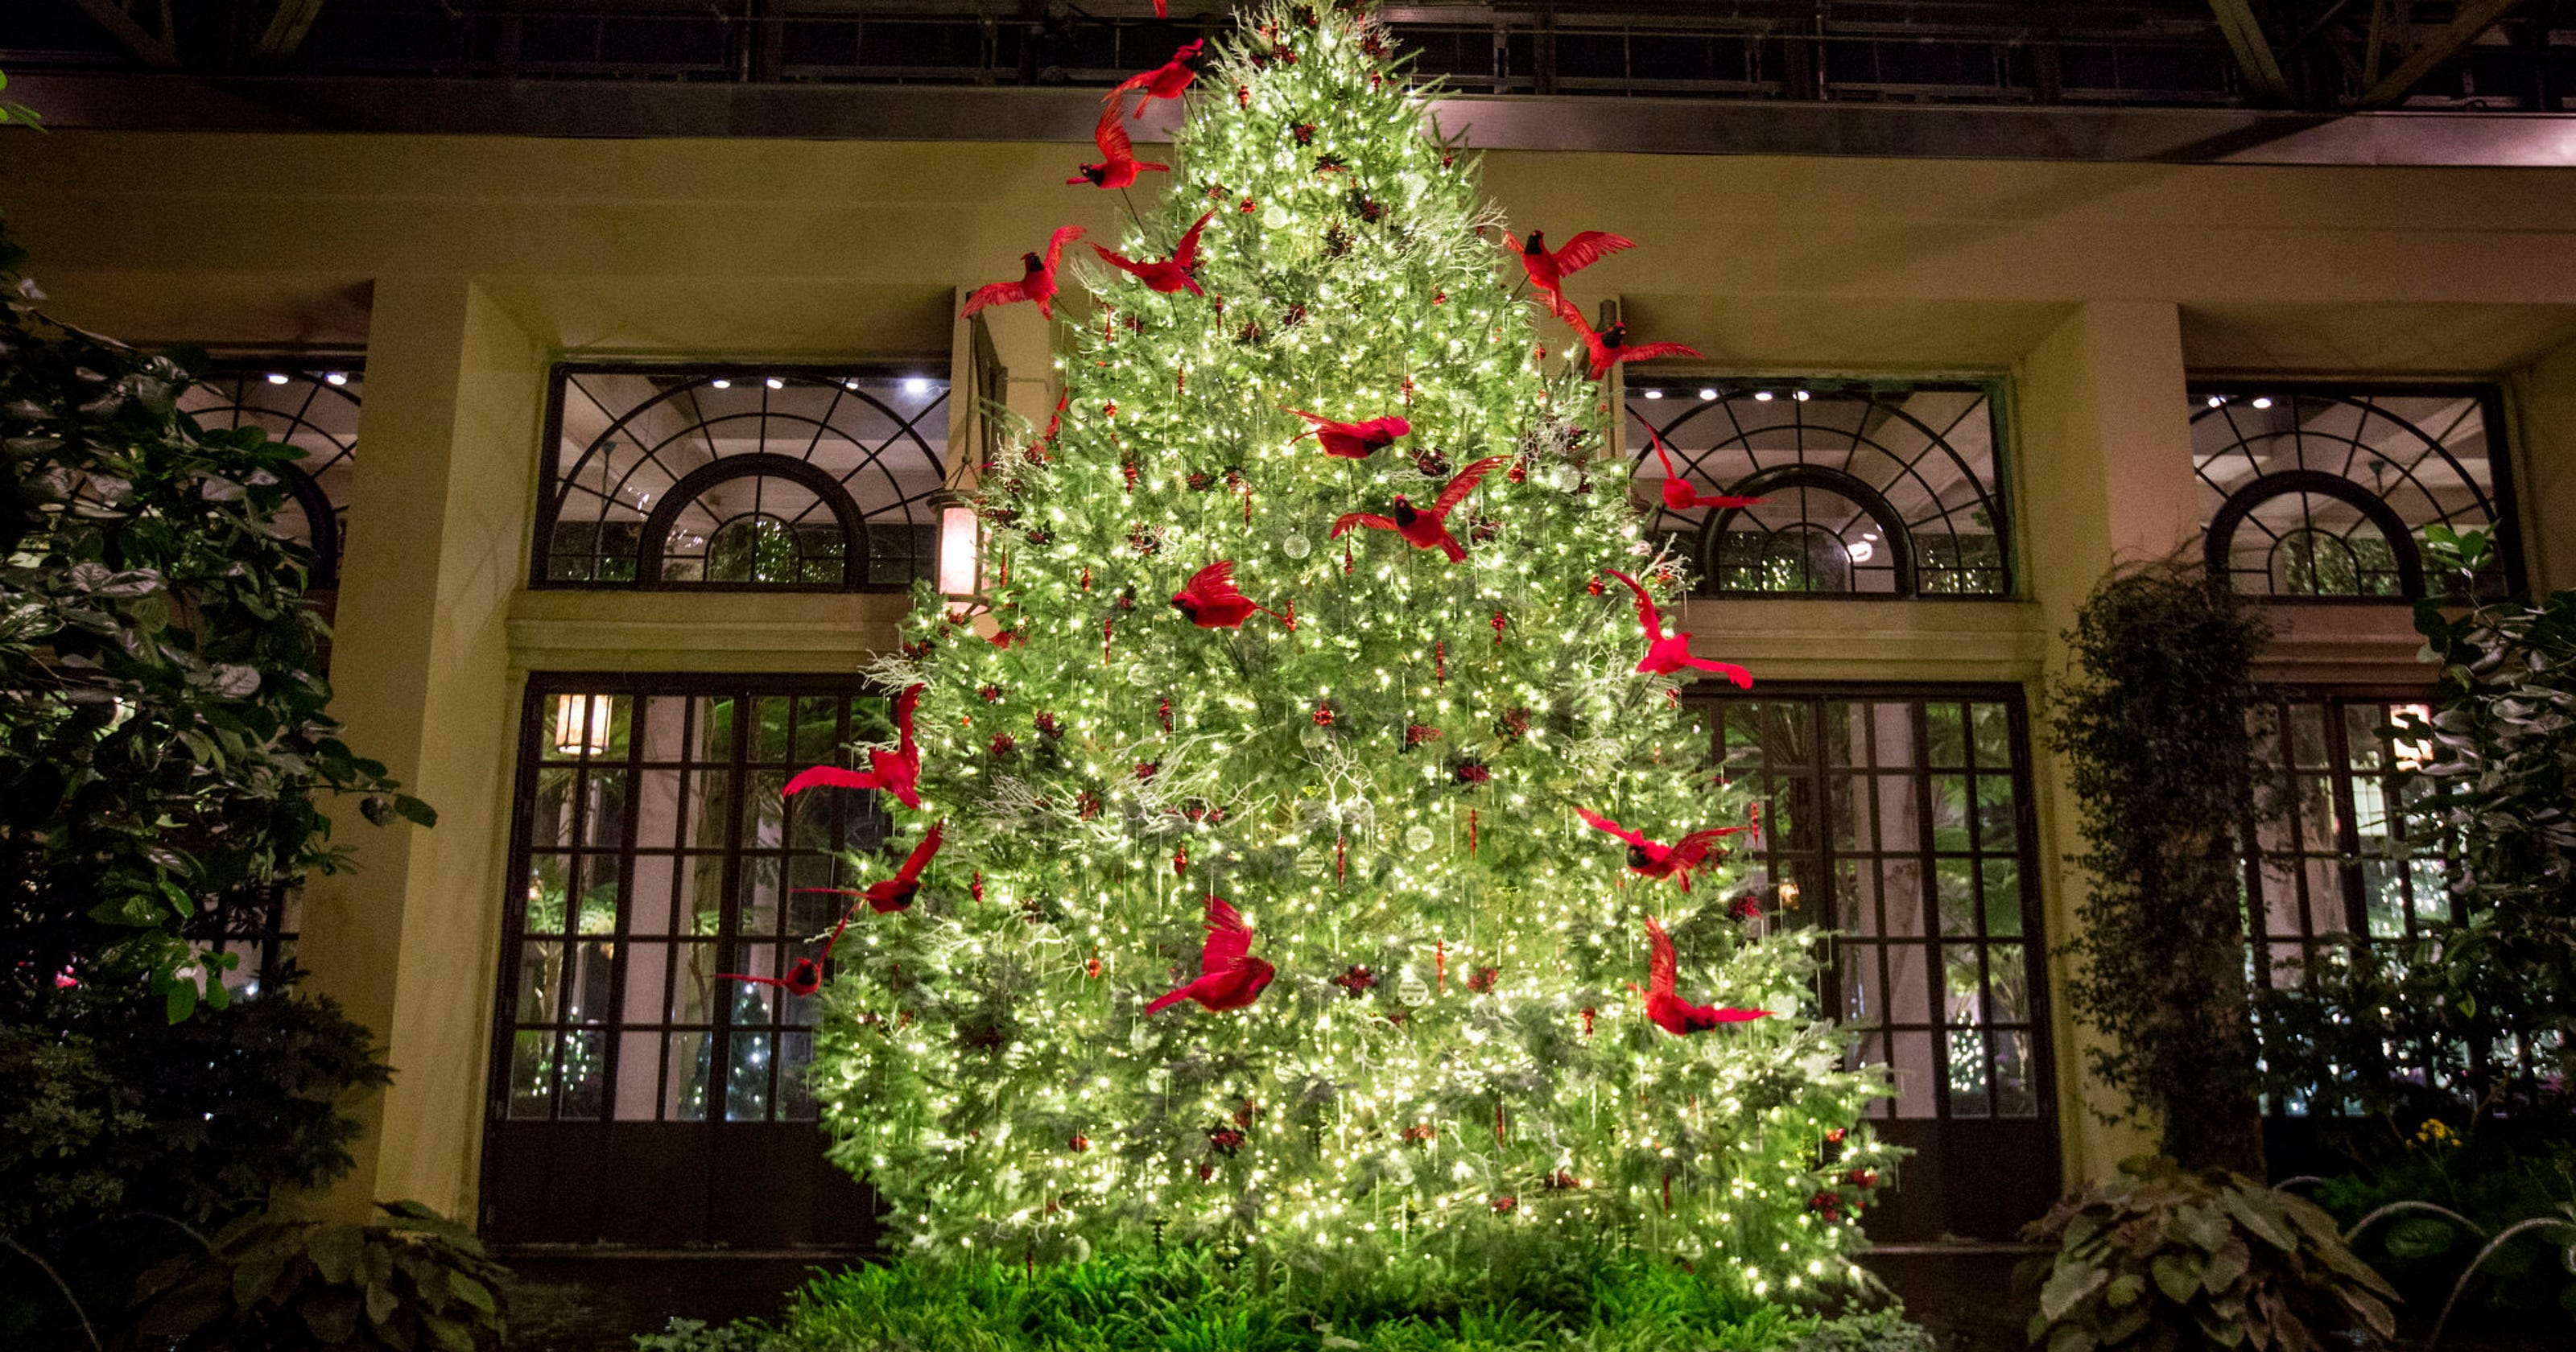 A Longwood Christmas sets a record number of daily visitors